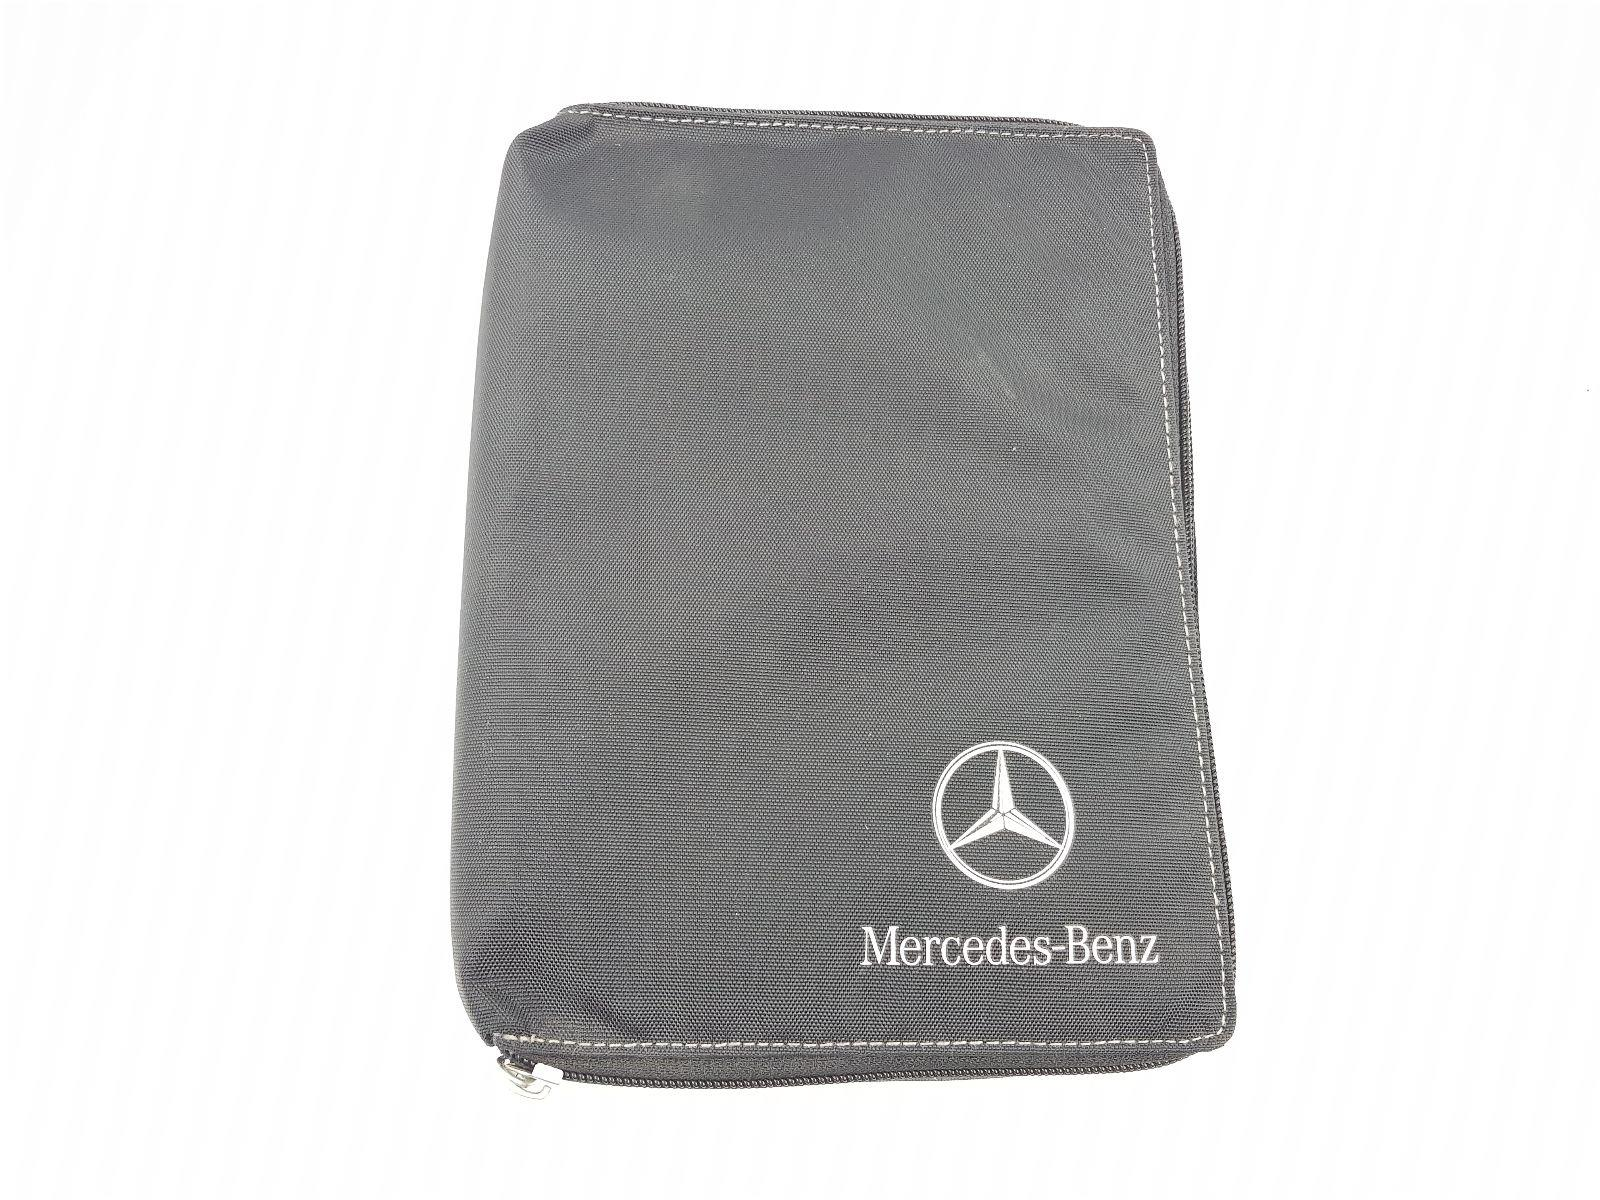 2003-2008 C203 Mercedes C Class OWNERS MANUAL + WALLET